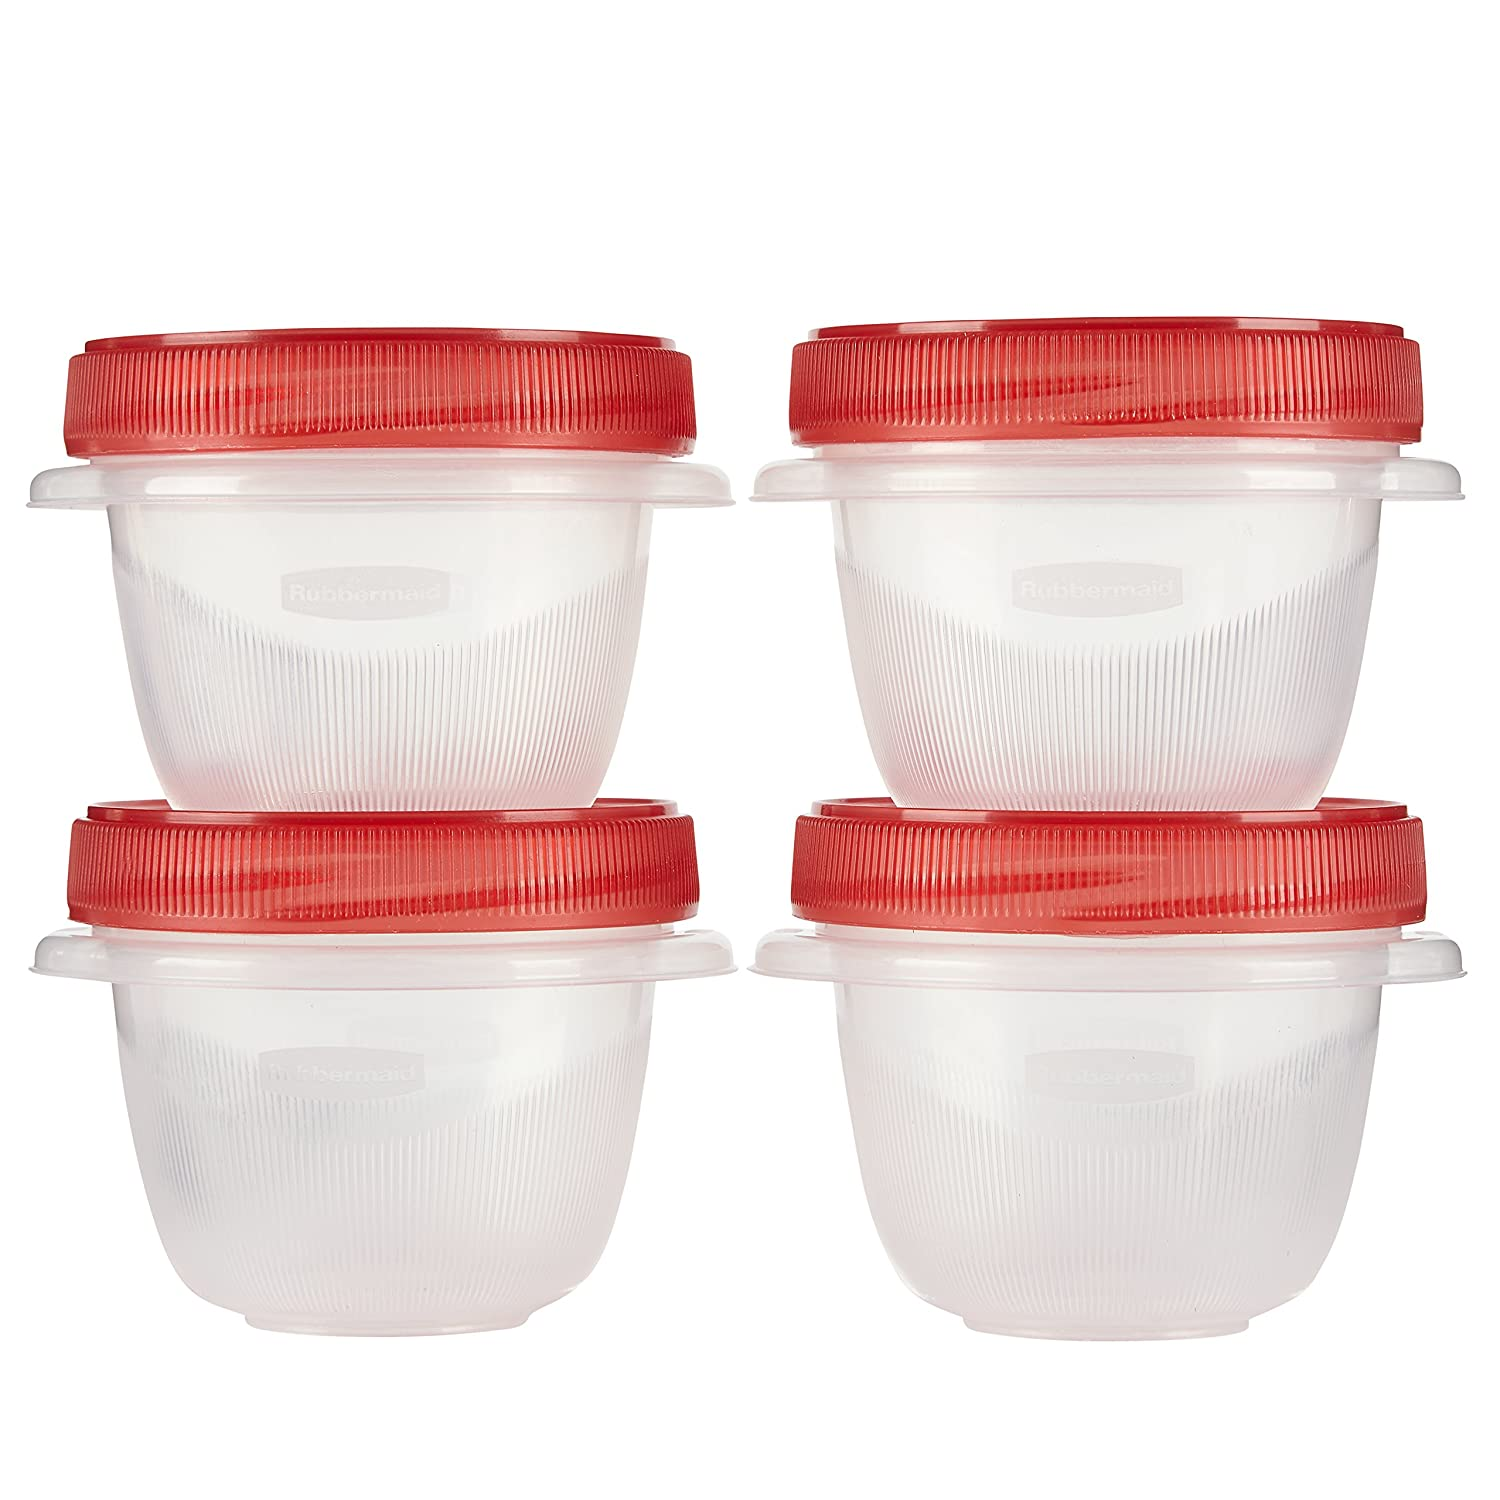 Rubbermaid Takealongs 1 2 Cup Twist And Seal Containers